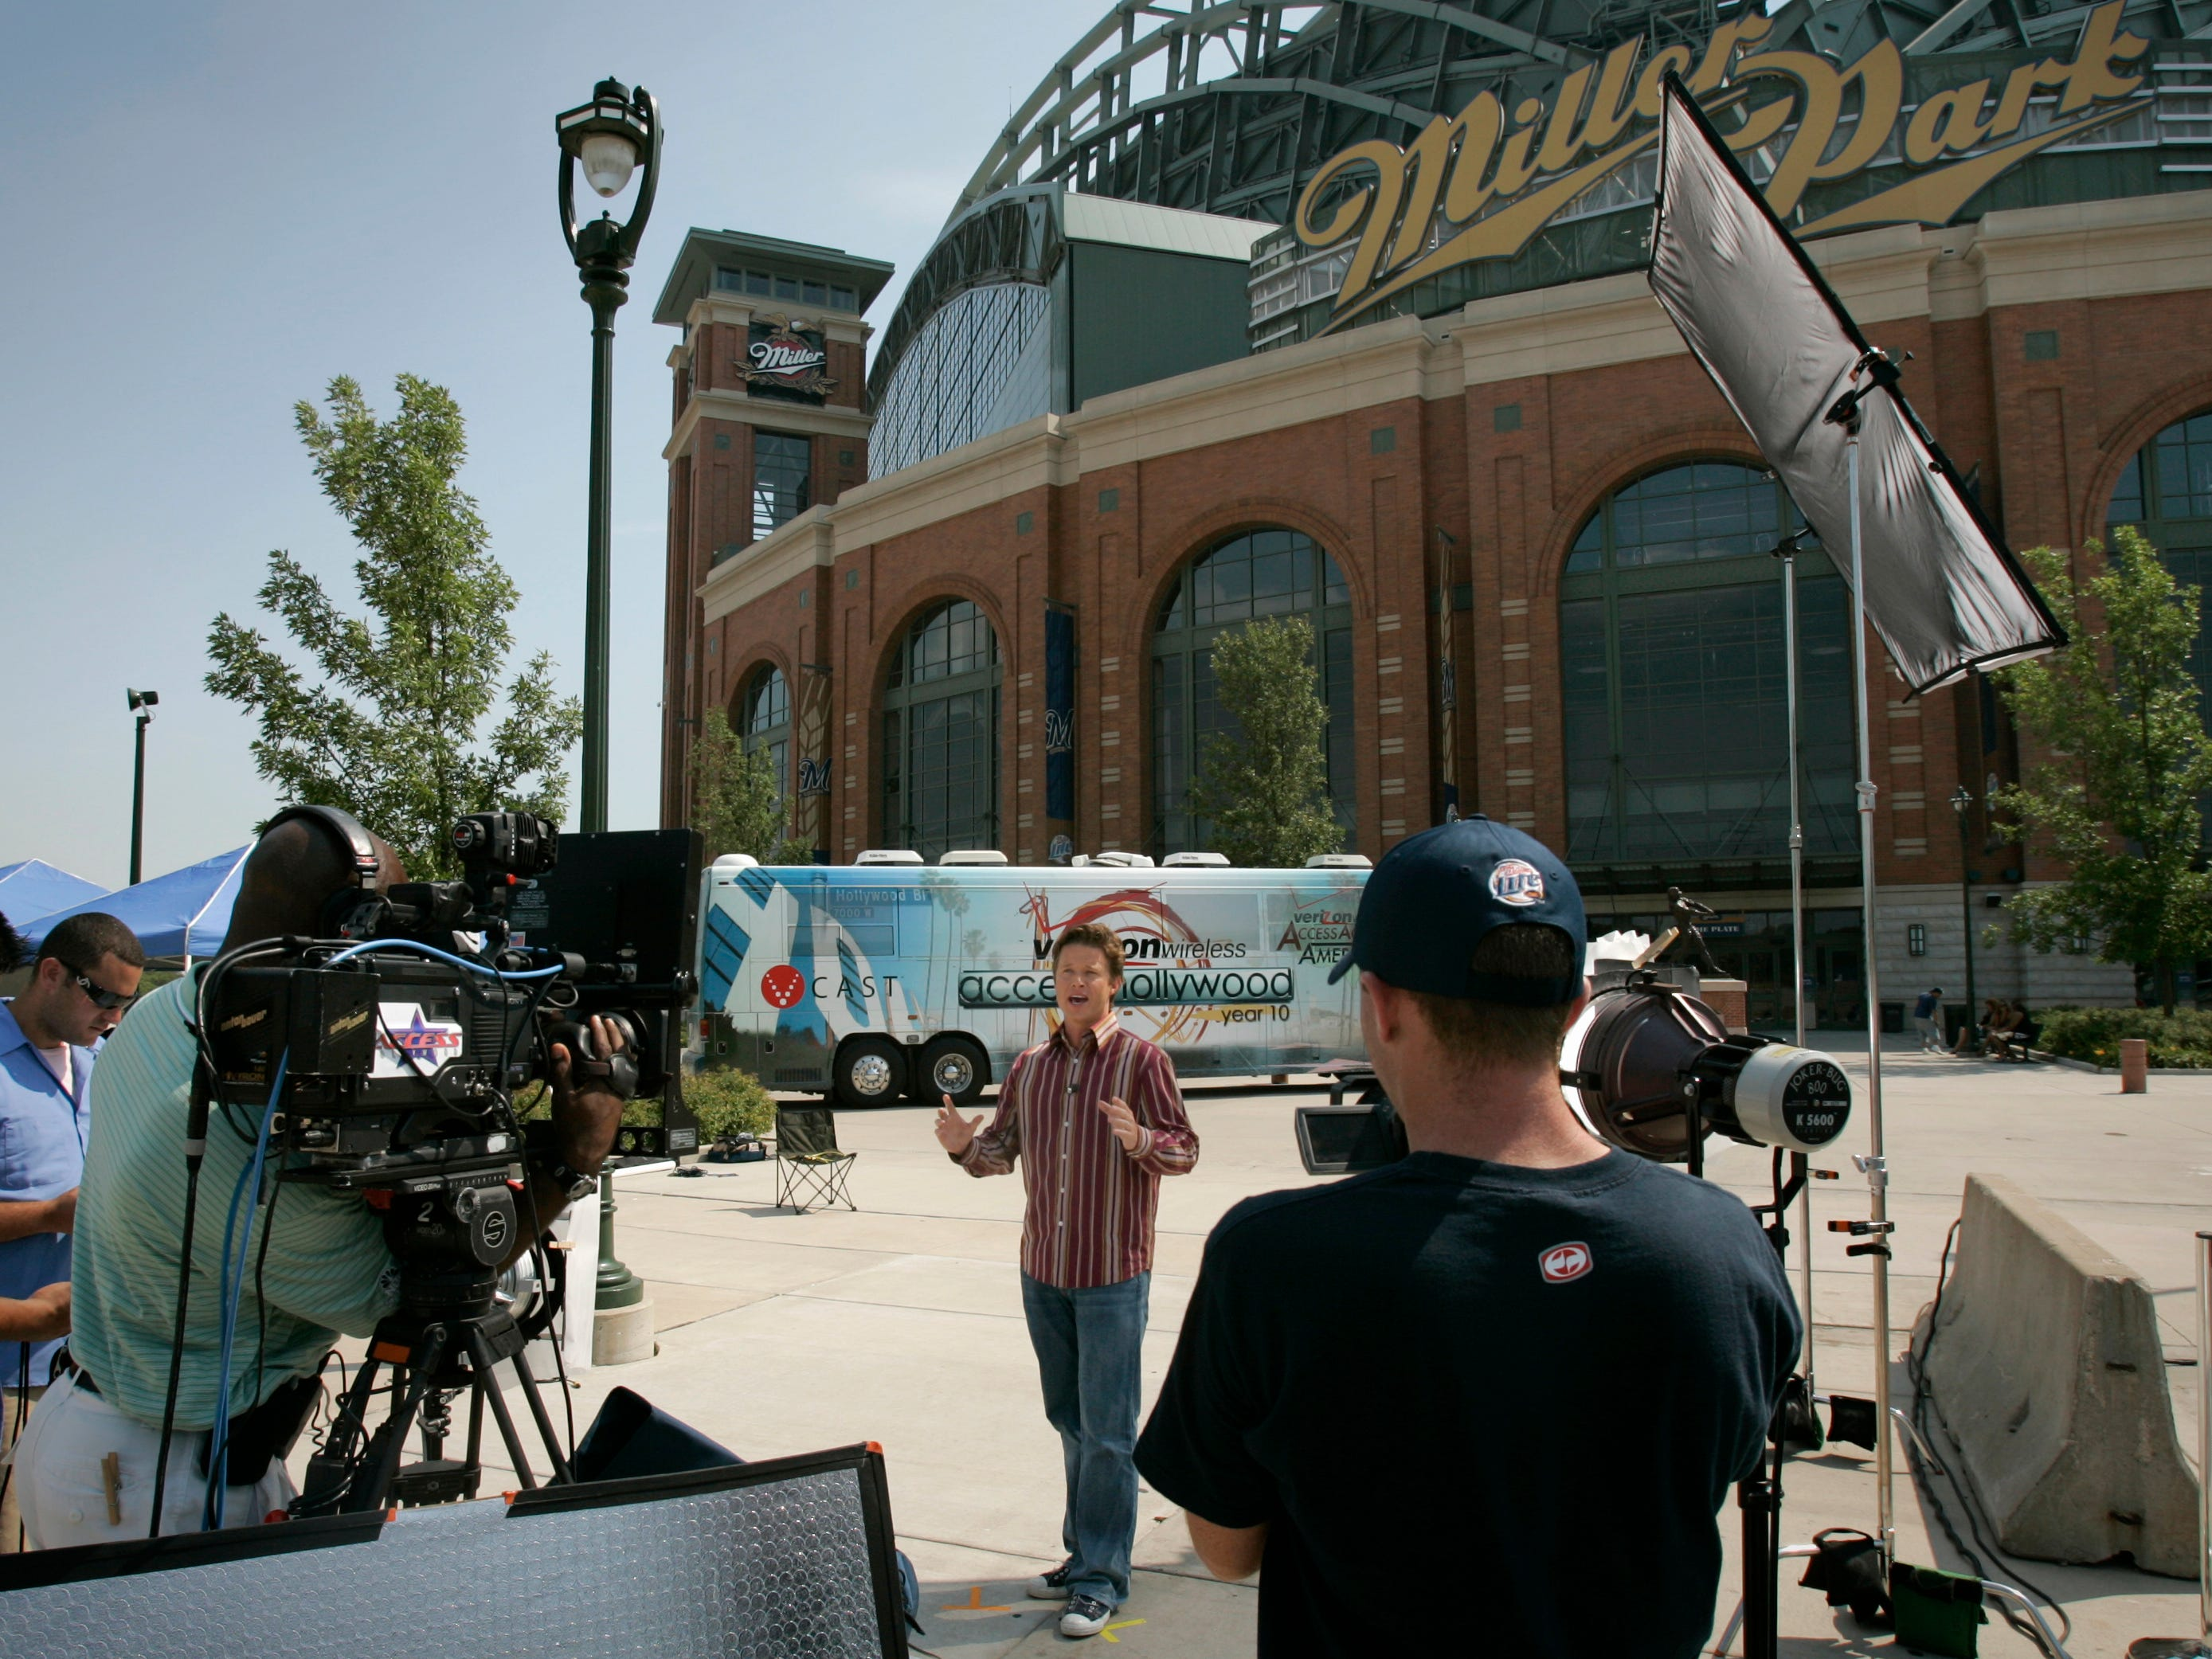 Billy Bush, co-host of the television show Access Hollywood with Nancy O'Dell, and his crew film a segment on Milwaukee in front of Miller Park Wednesday, Sept. 7, 2005.